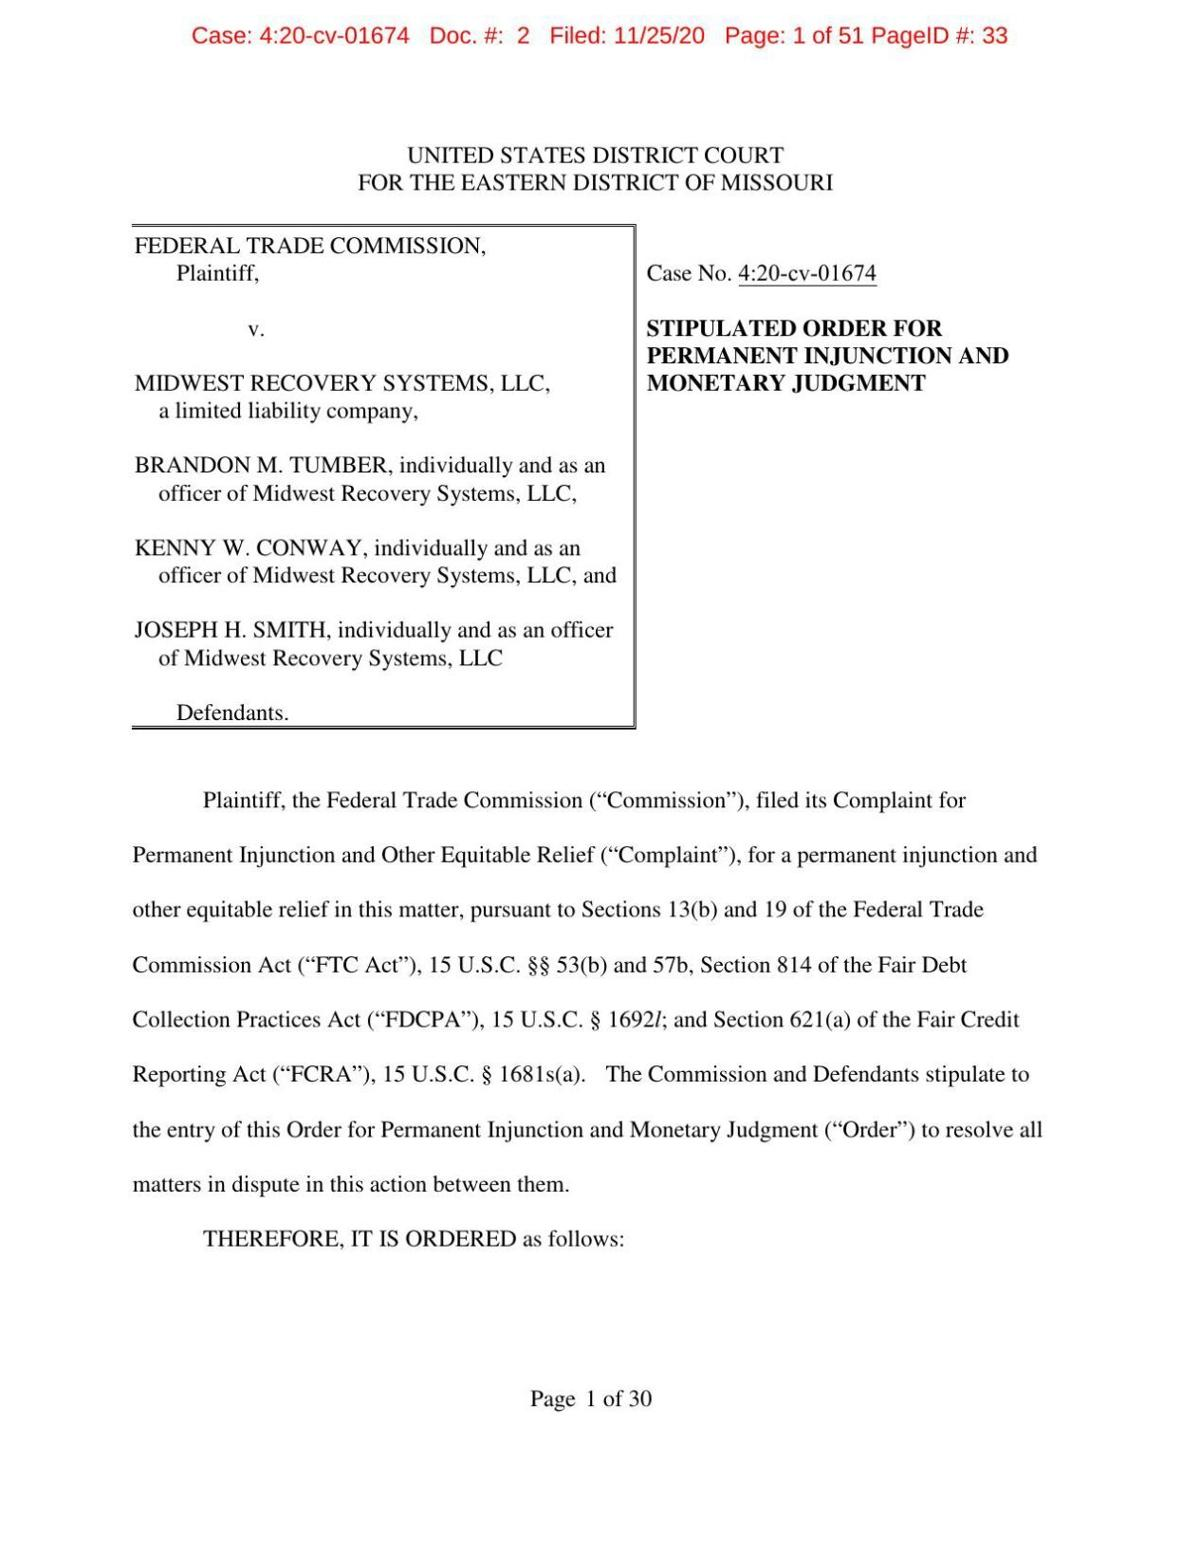 Order signed by FTC and Midwest Recovery Systems defendants